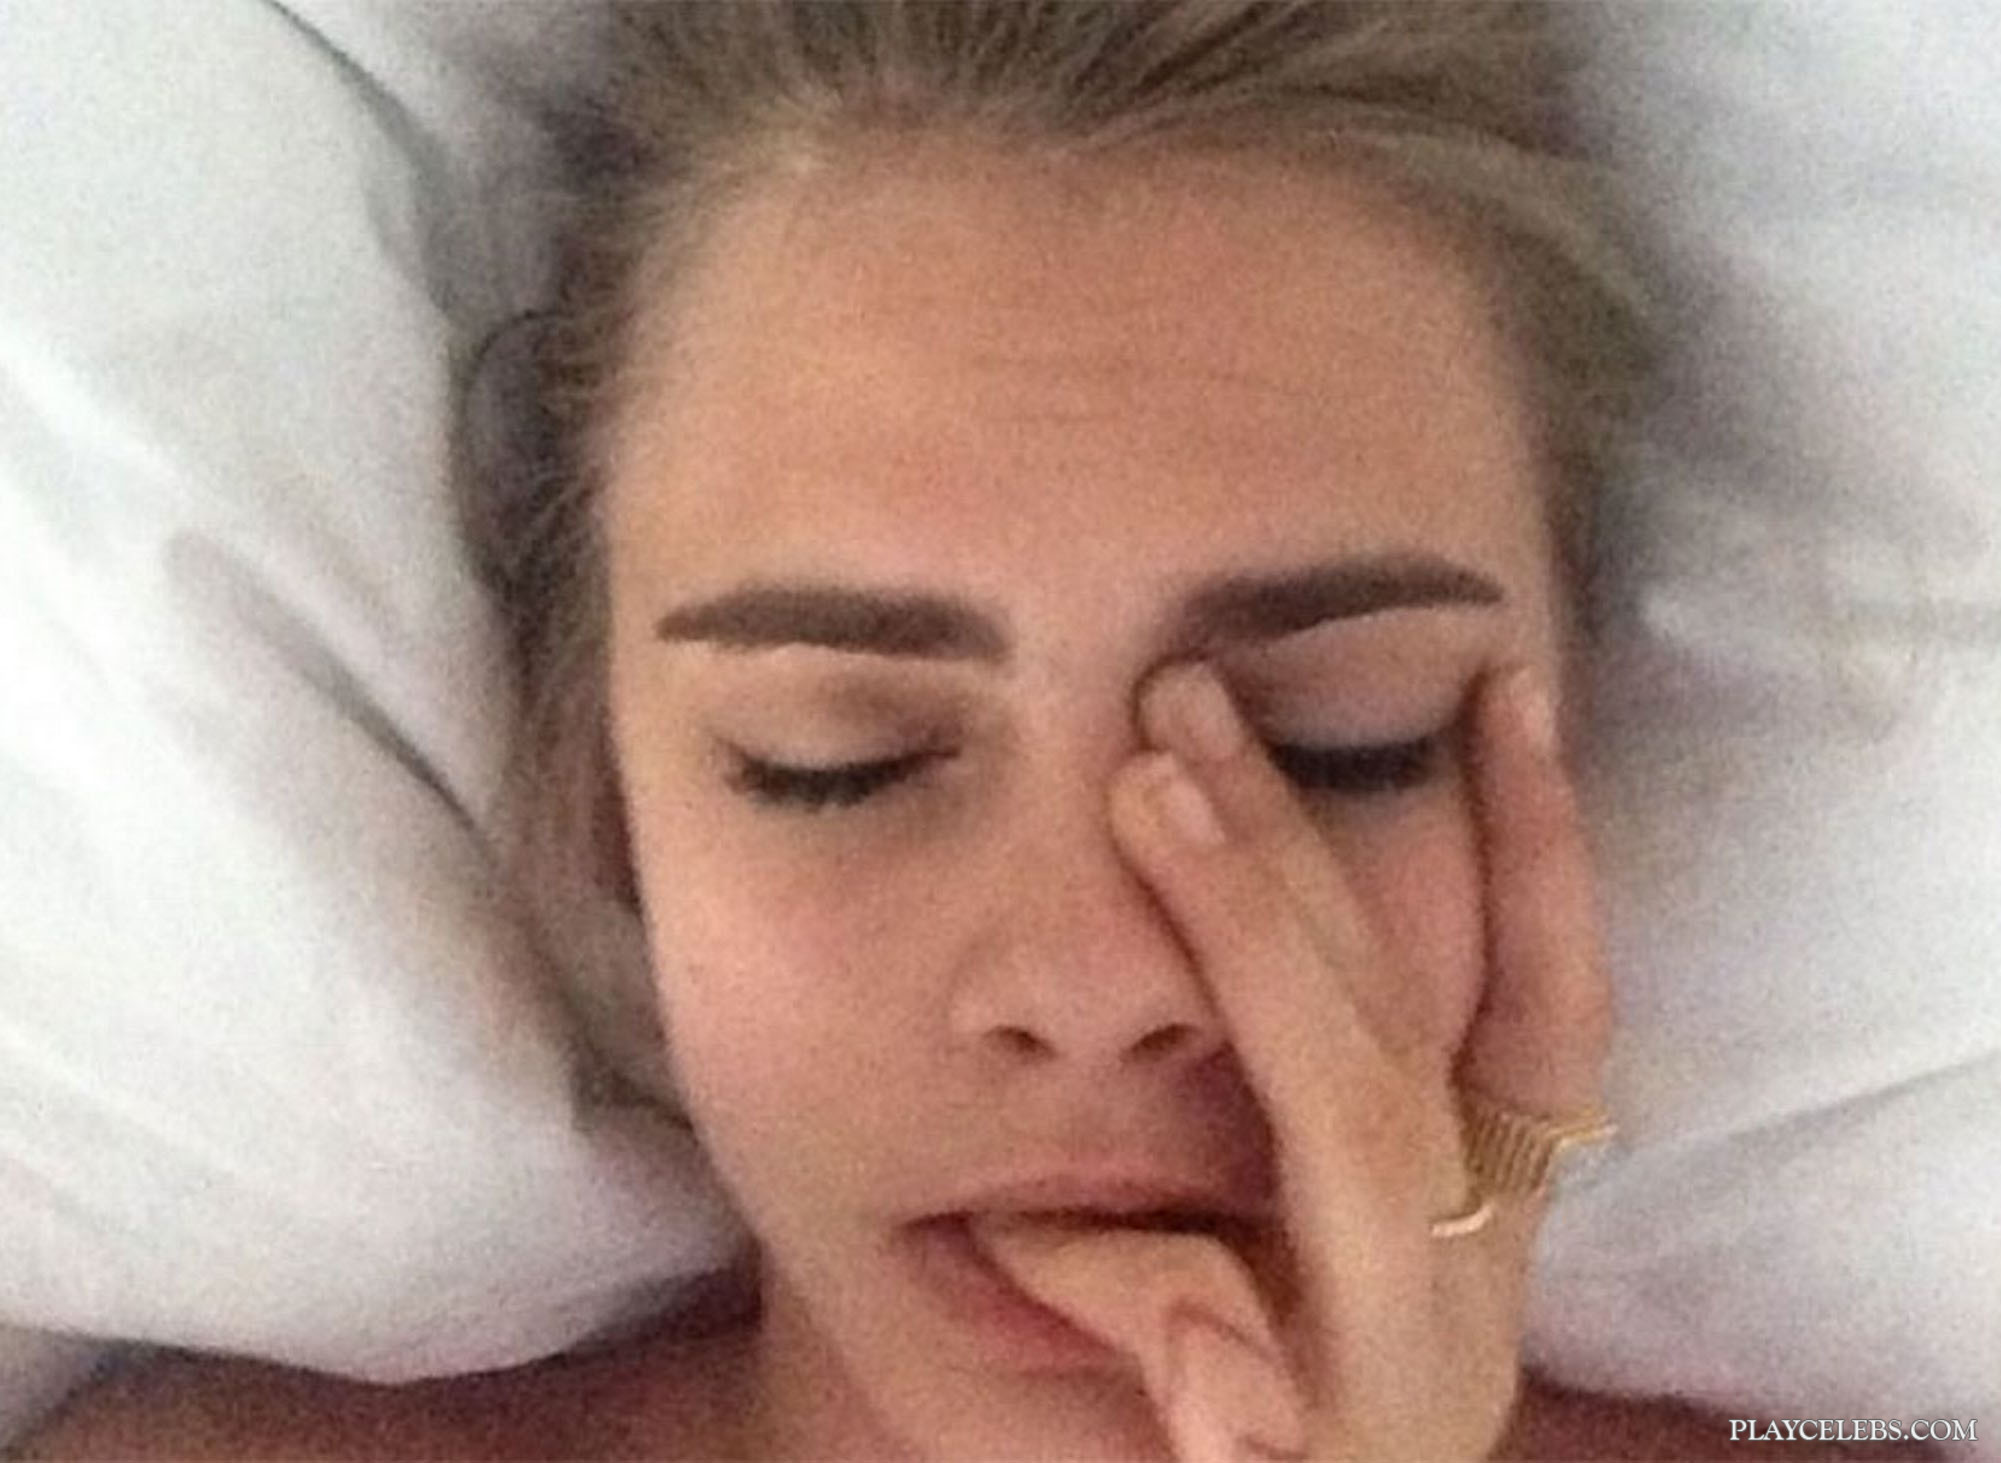 Cara Delevingne Leaked Nude Pussy Selfie Thefappening Pictures